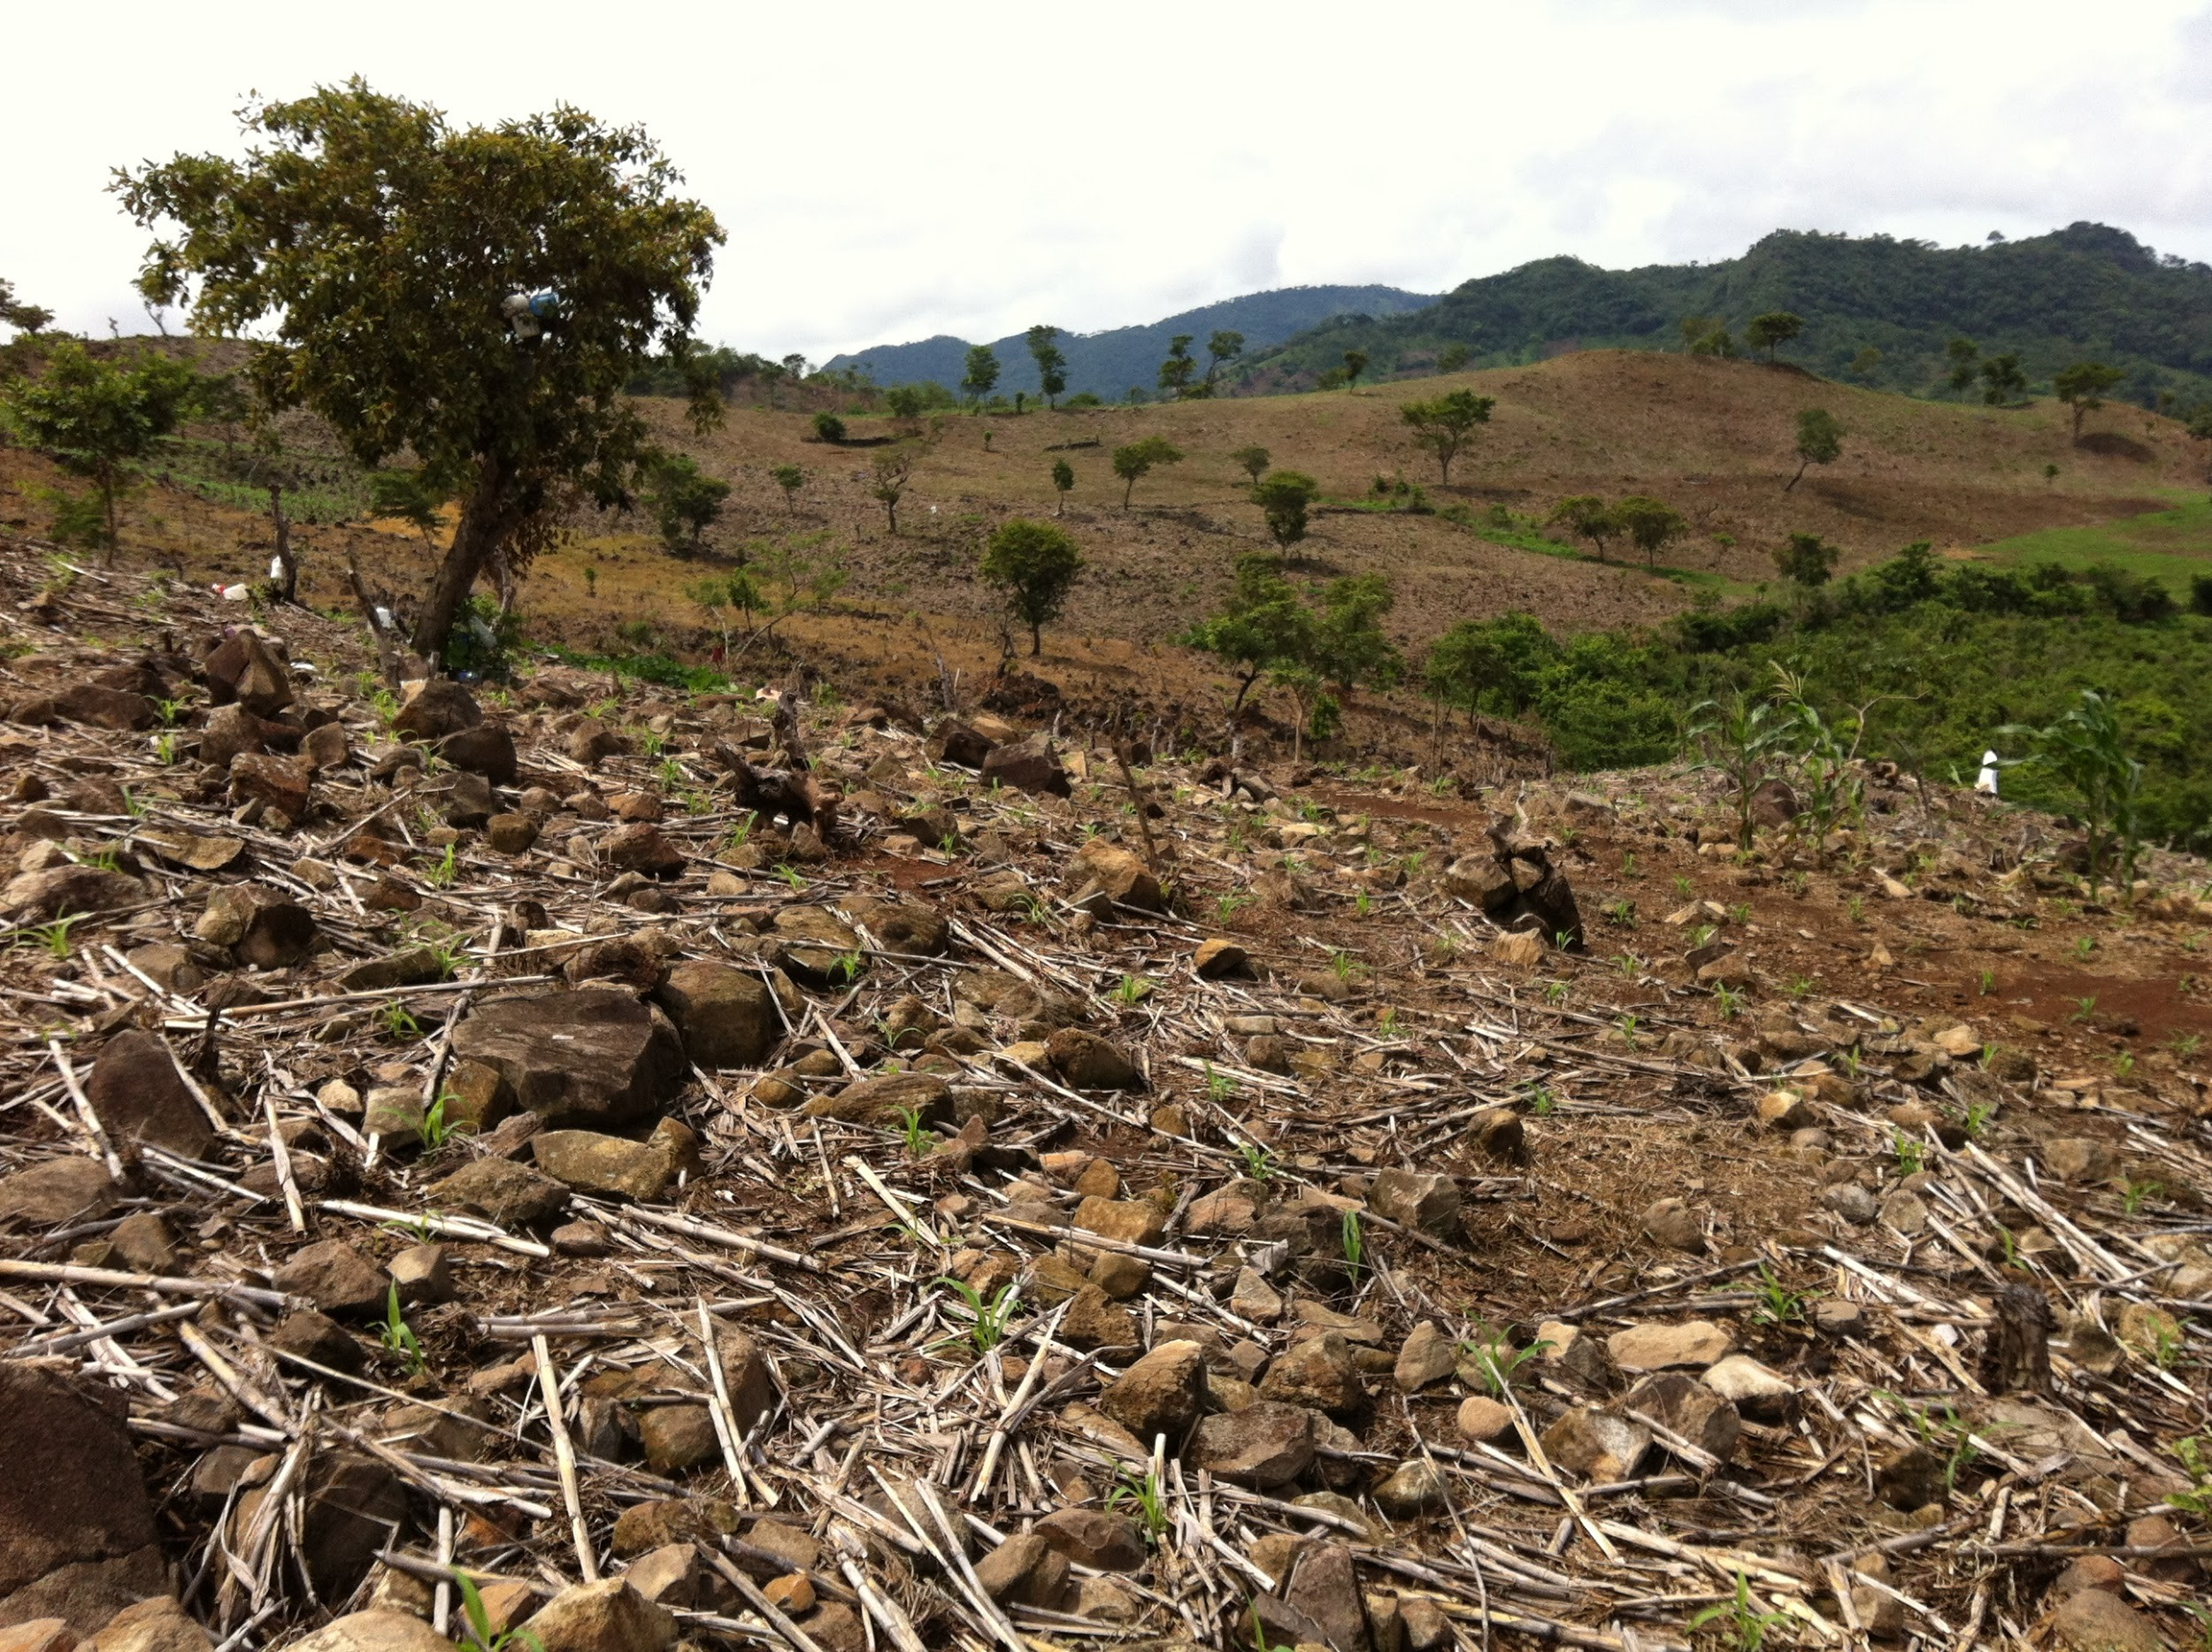 Because of land scarcity and limited resources, many small-scale subsistence farmers in El Salvador have had no choice but to use rocky soil like this to grow their crops. The fields shown in this photo are rented by several different farmers. Photo credit: Sean Kearney, ABES Project